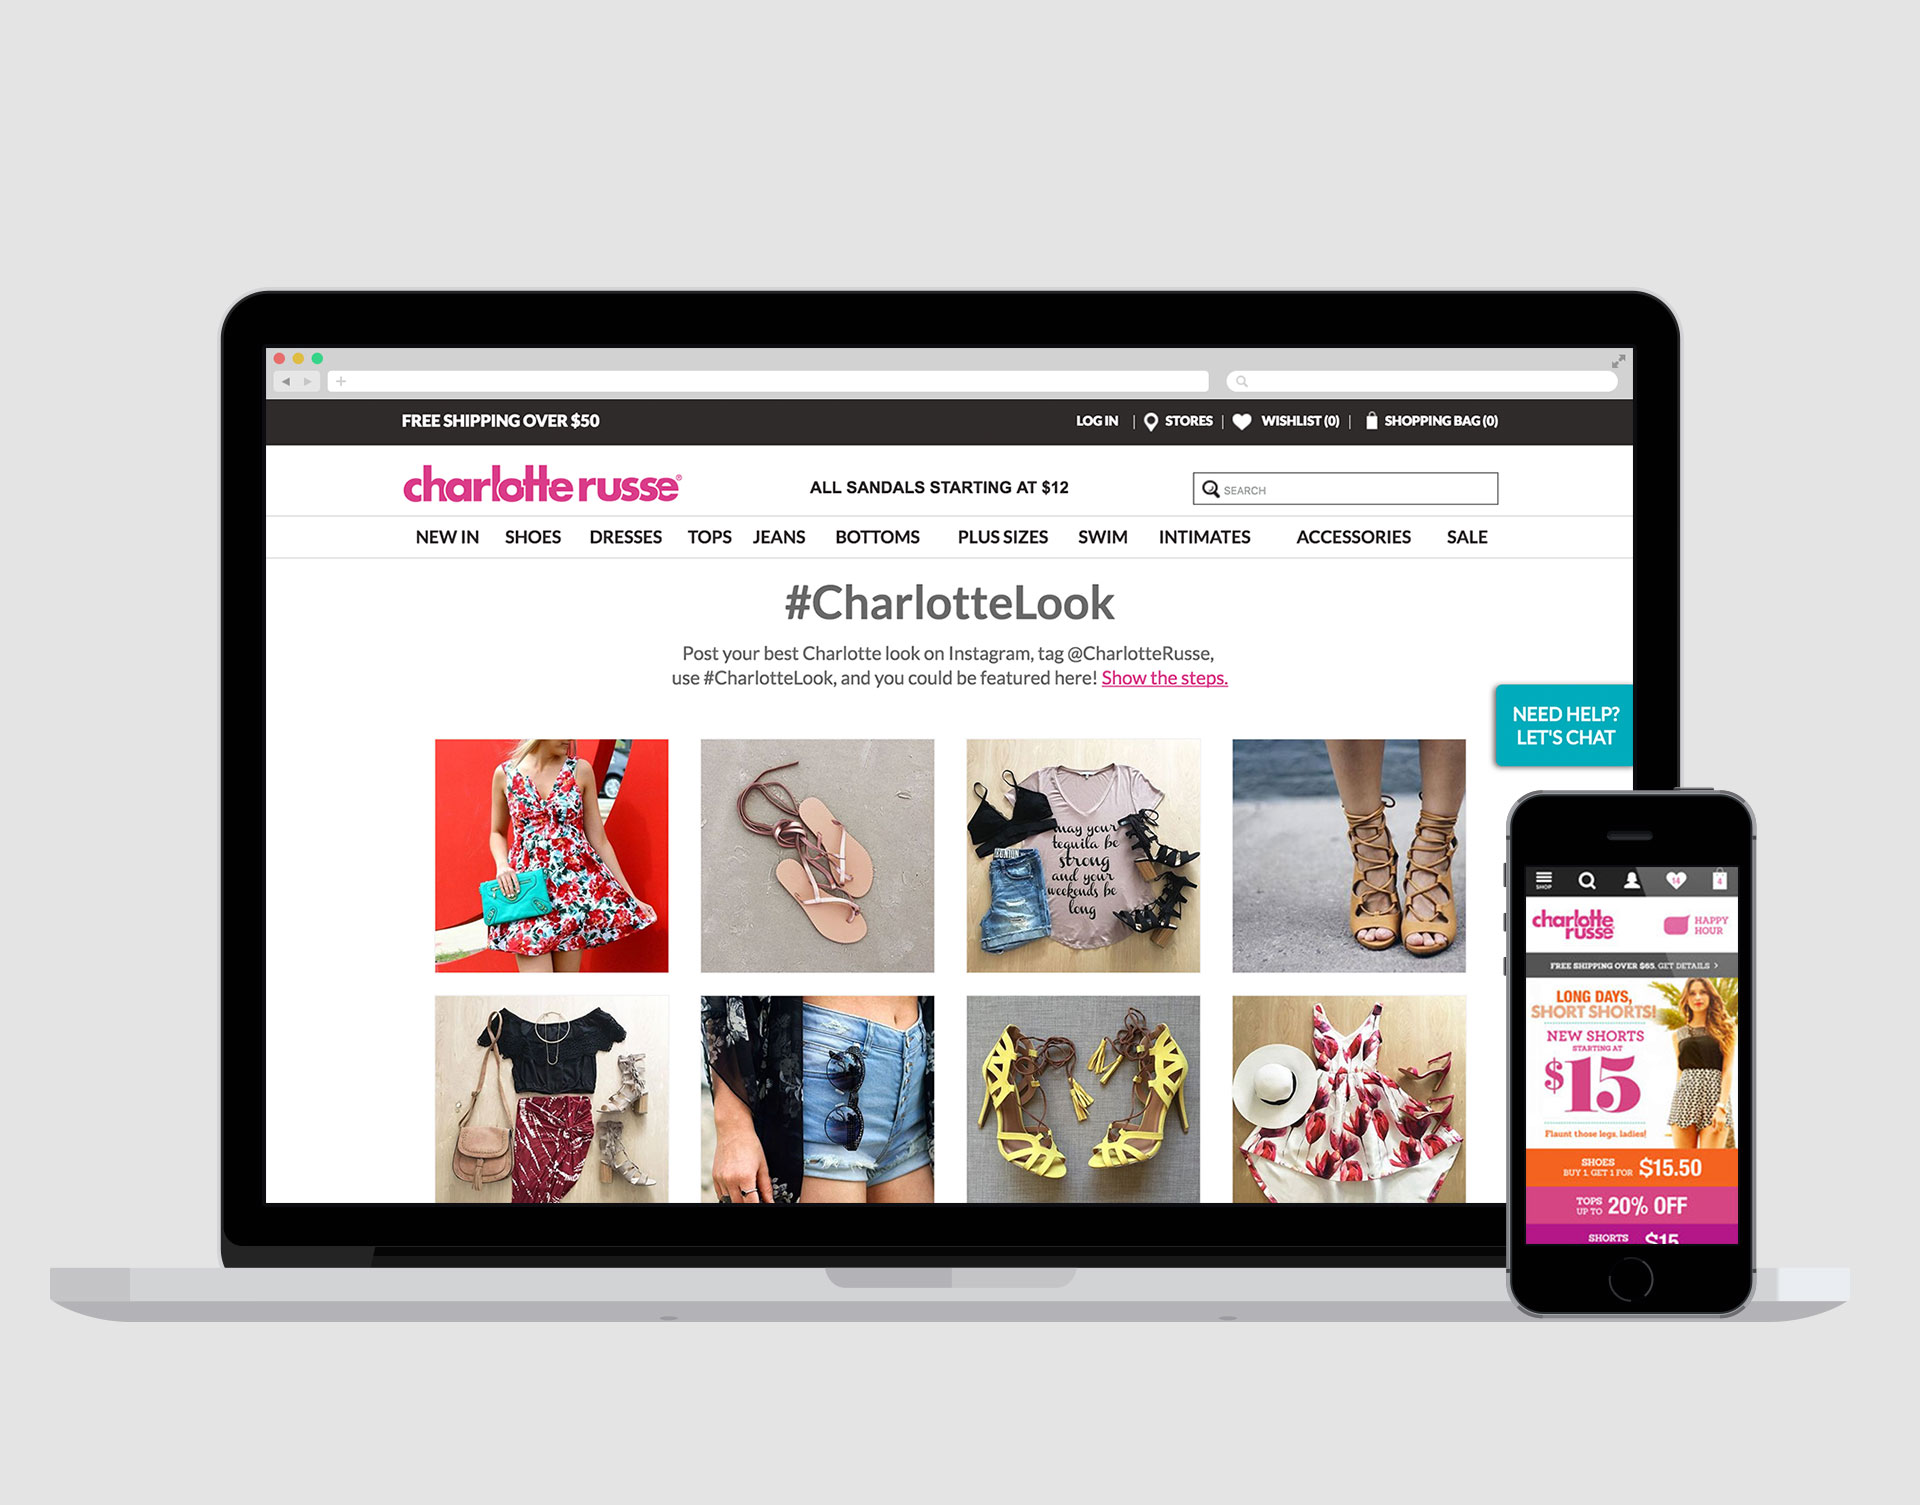 CHARLOTTE RUSSE  SITE REDESIGN + STRATEGY  Following a brand overhaul and site relaunch, a retainer, cross-functional team was engaged to execute campaigns, design site refreshes, perform consumer research, form omni-channel strategies,and measure site performance.    READ MORE →